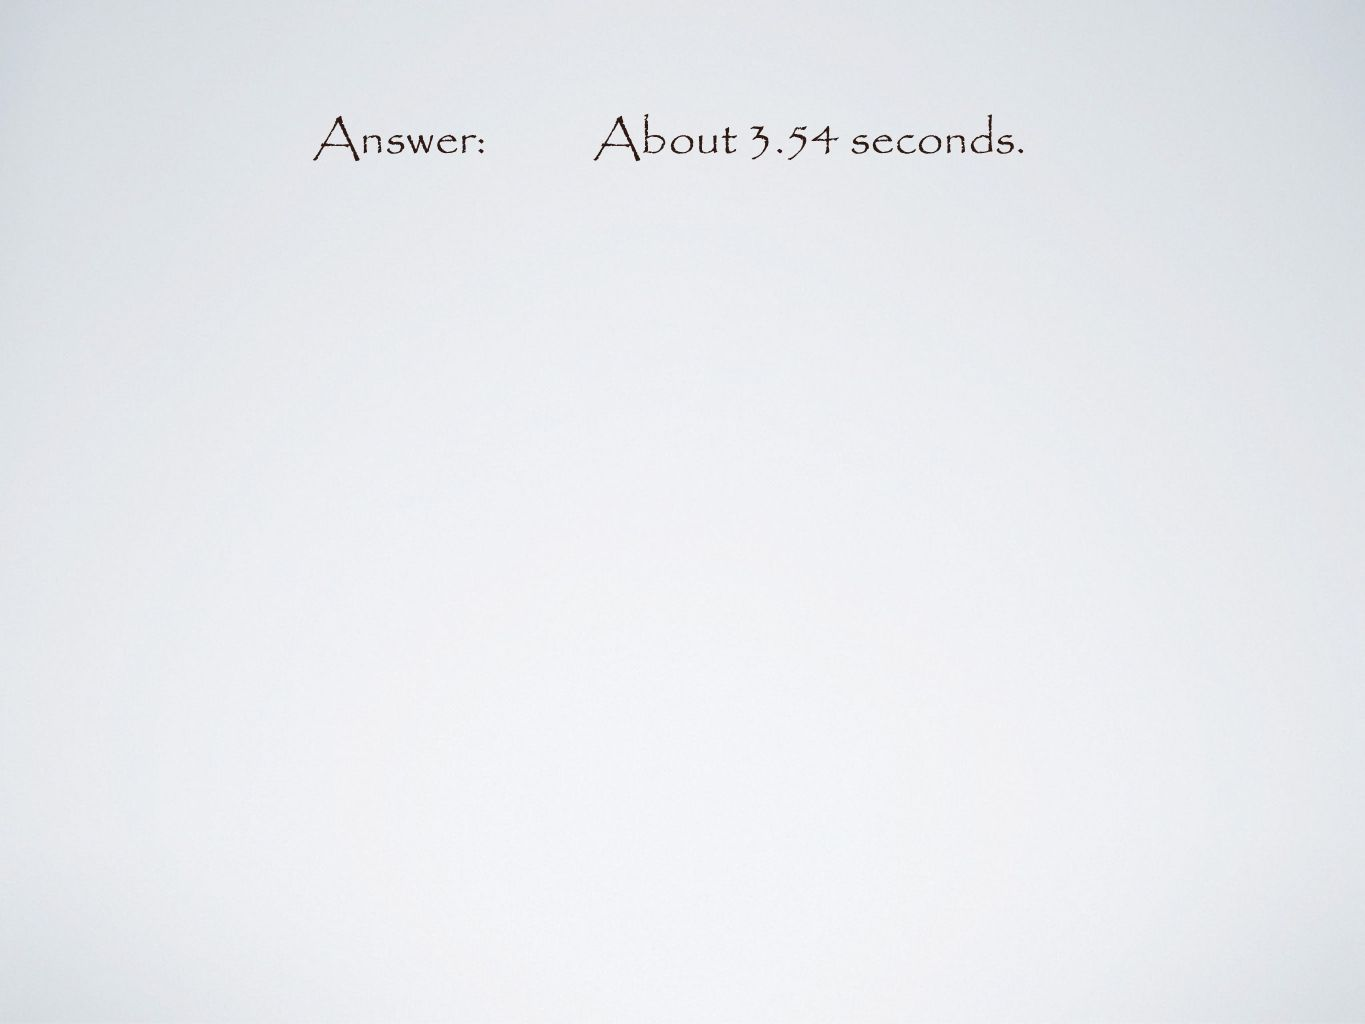 Answer:About 3.54 seconds.